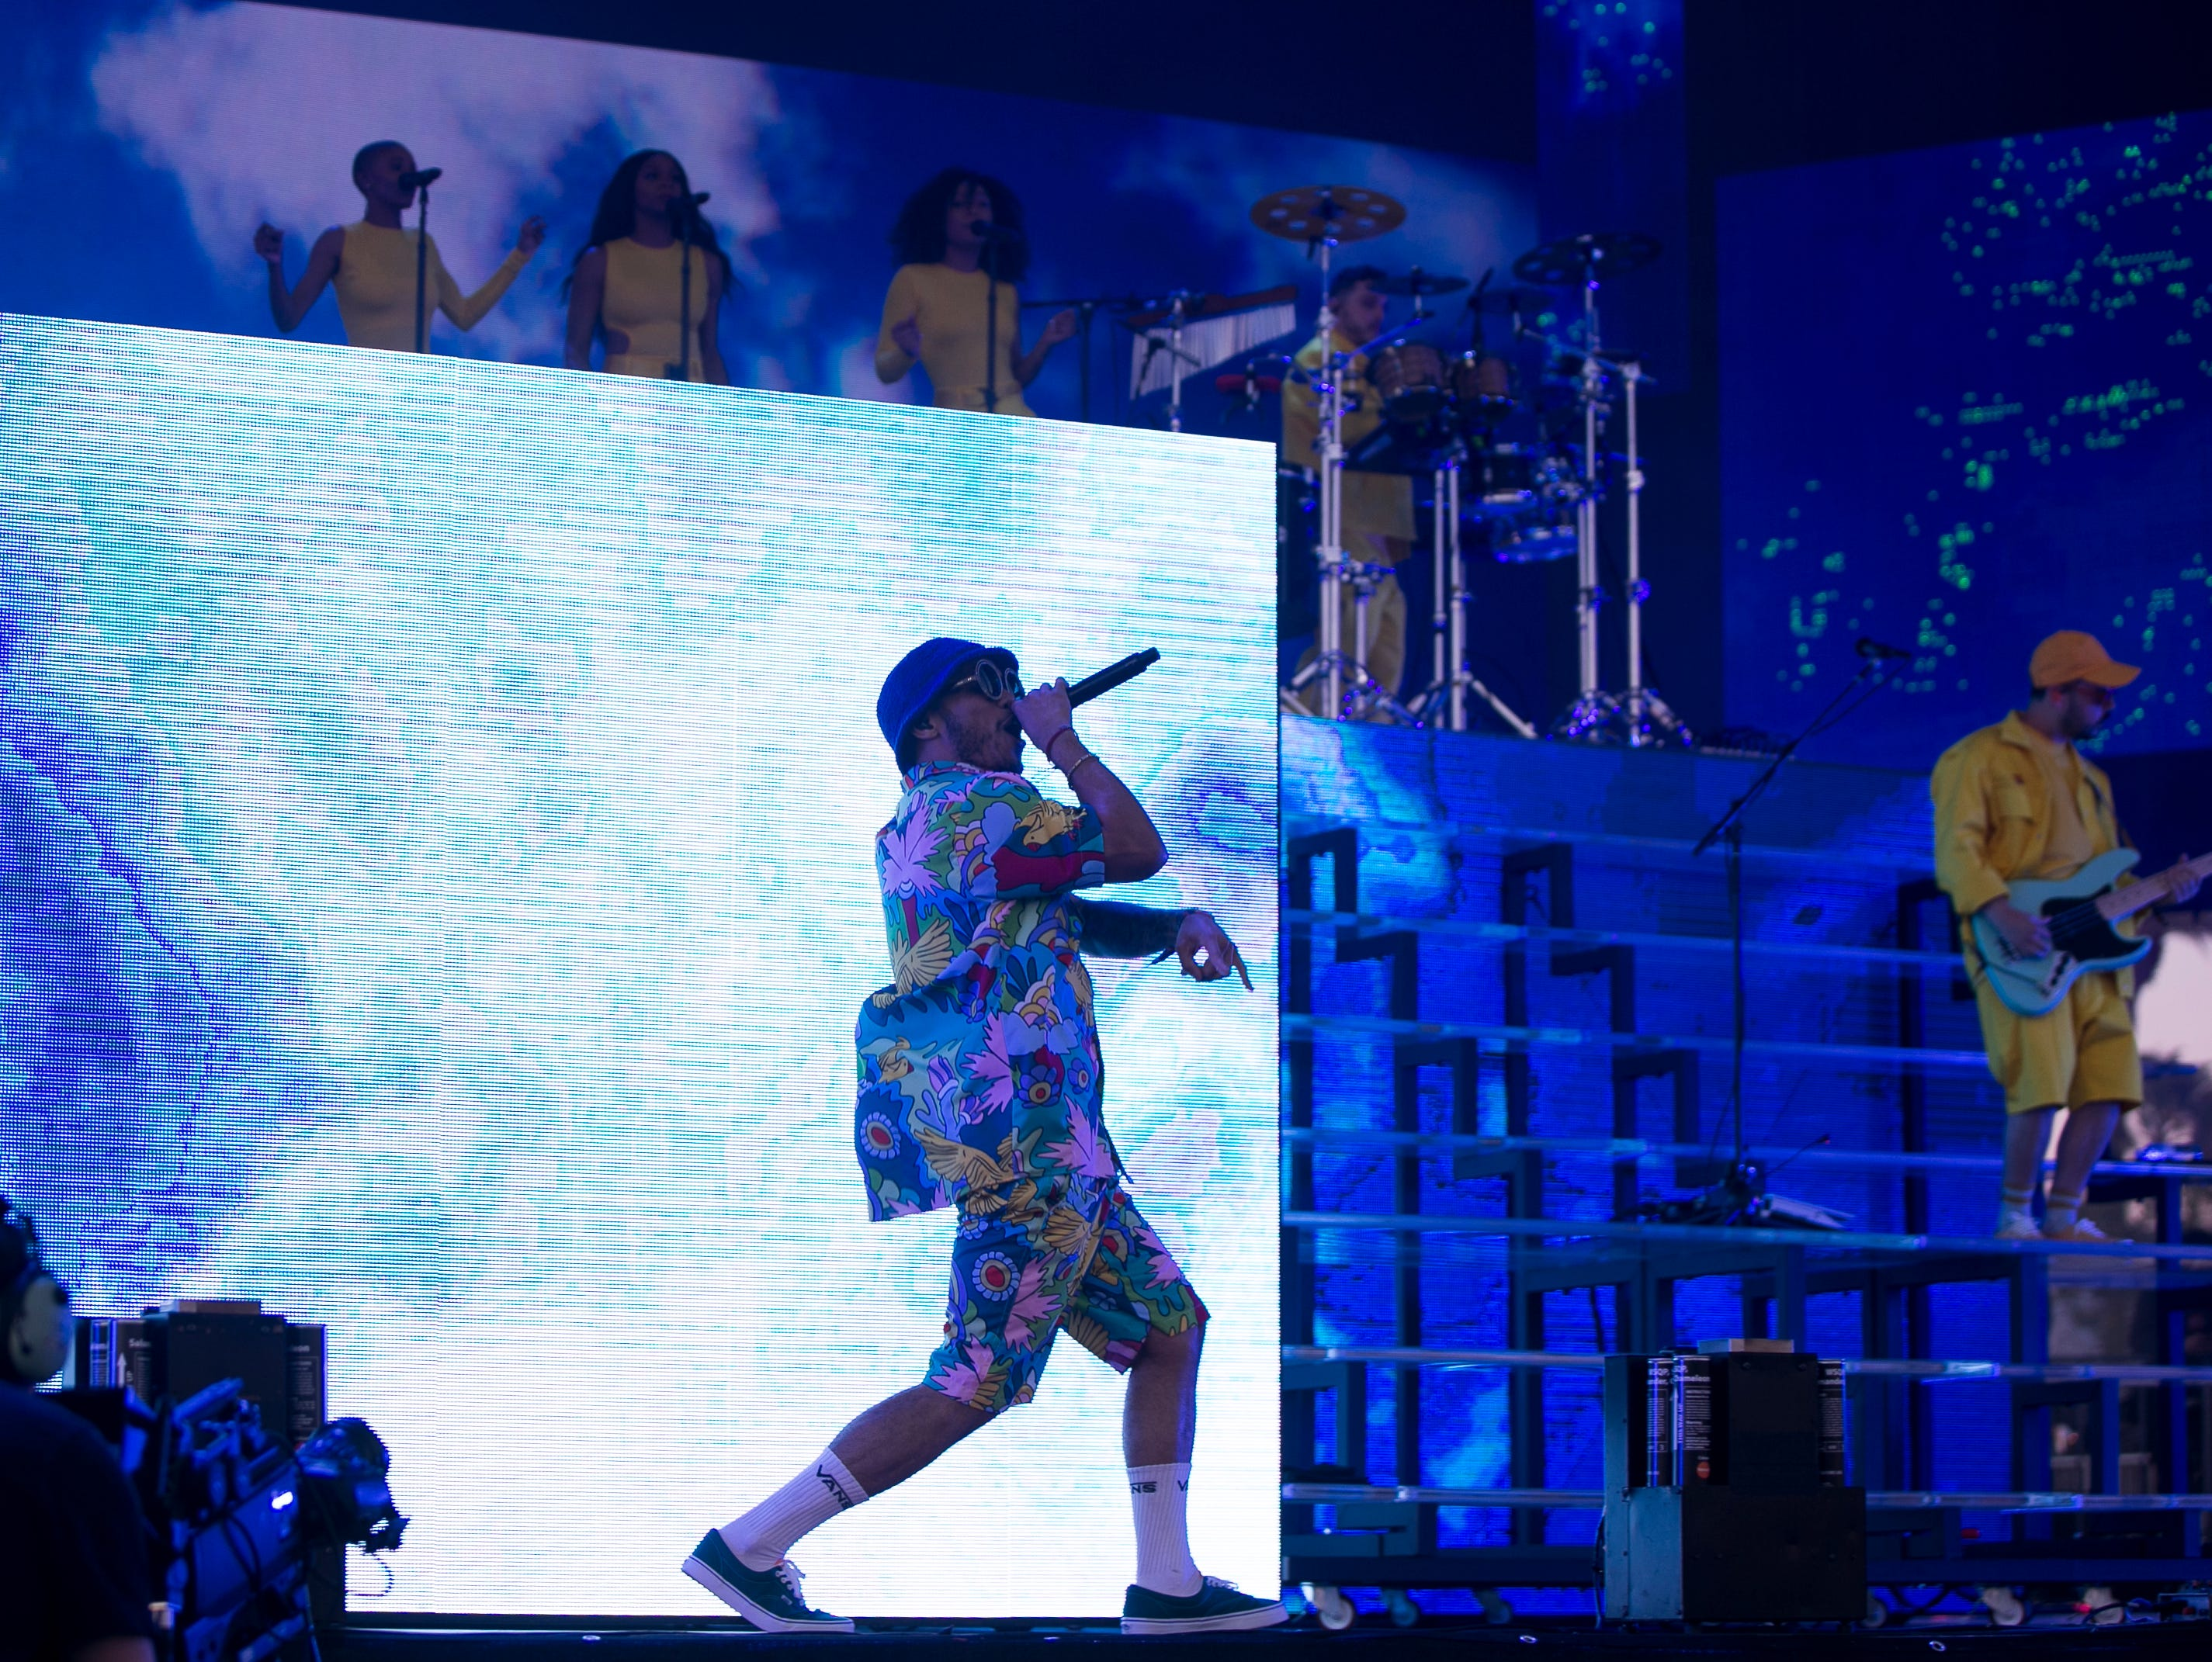 Anderson .Paak and The Free Nationals perform on stage at the Coachella Valley Music and Arts Festival in Indio, Calif. on Fri. April 12, 2019.